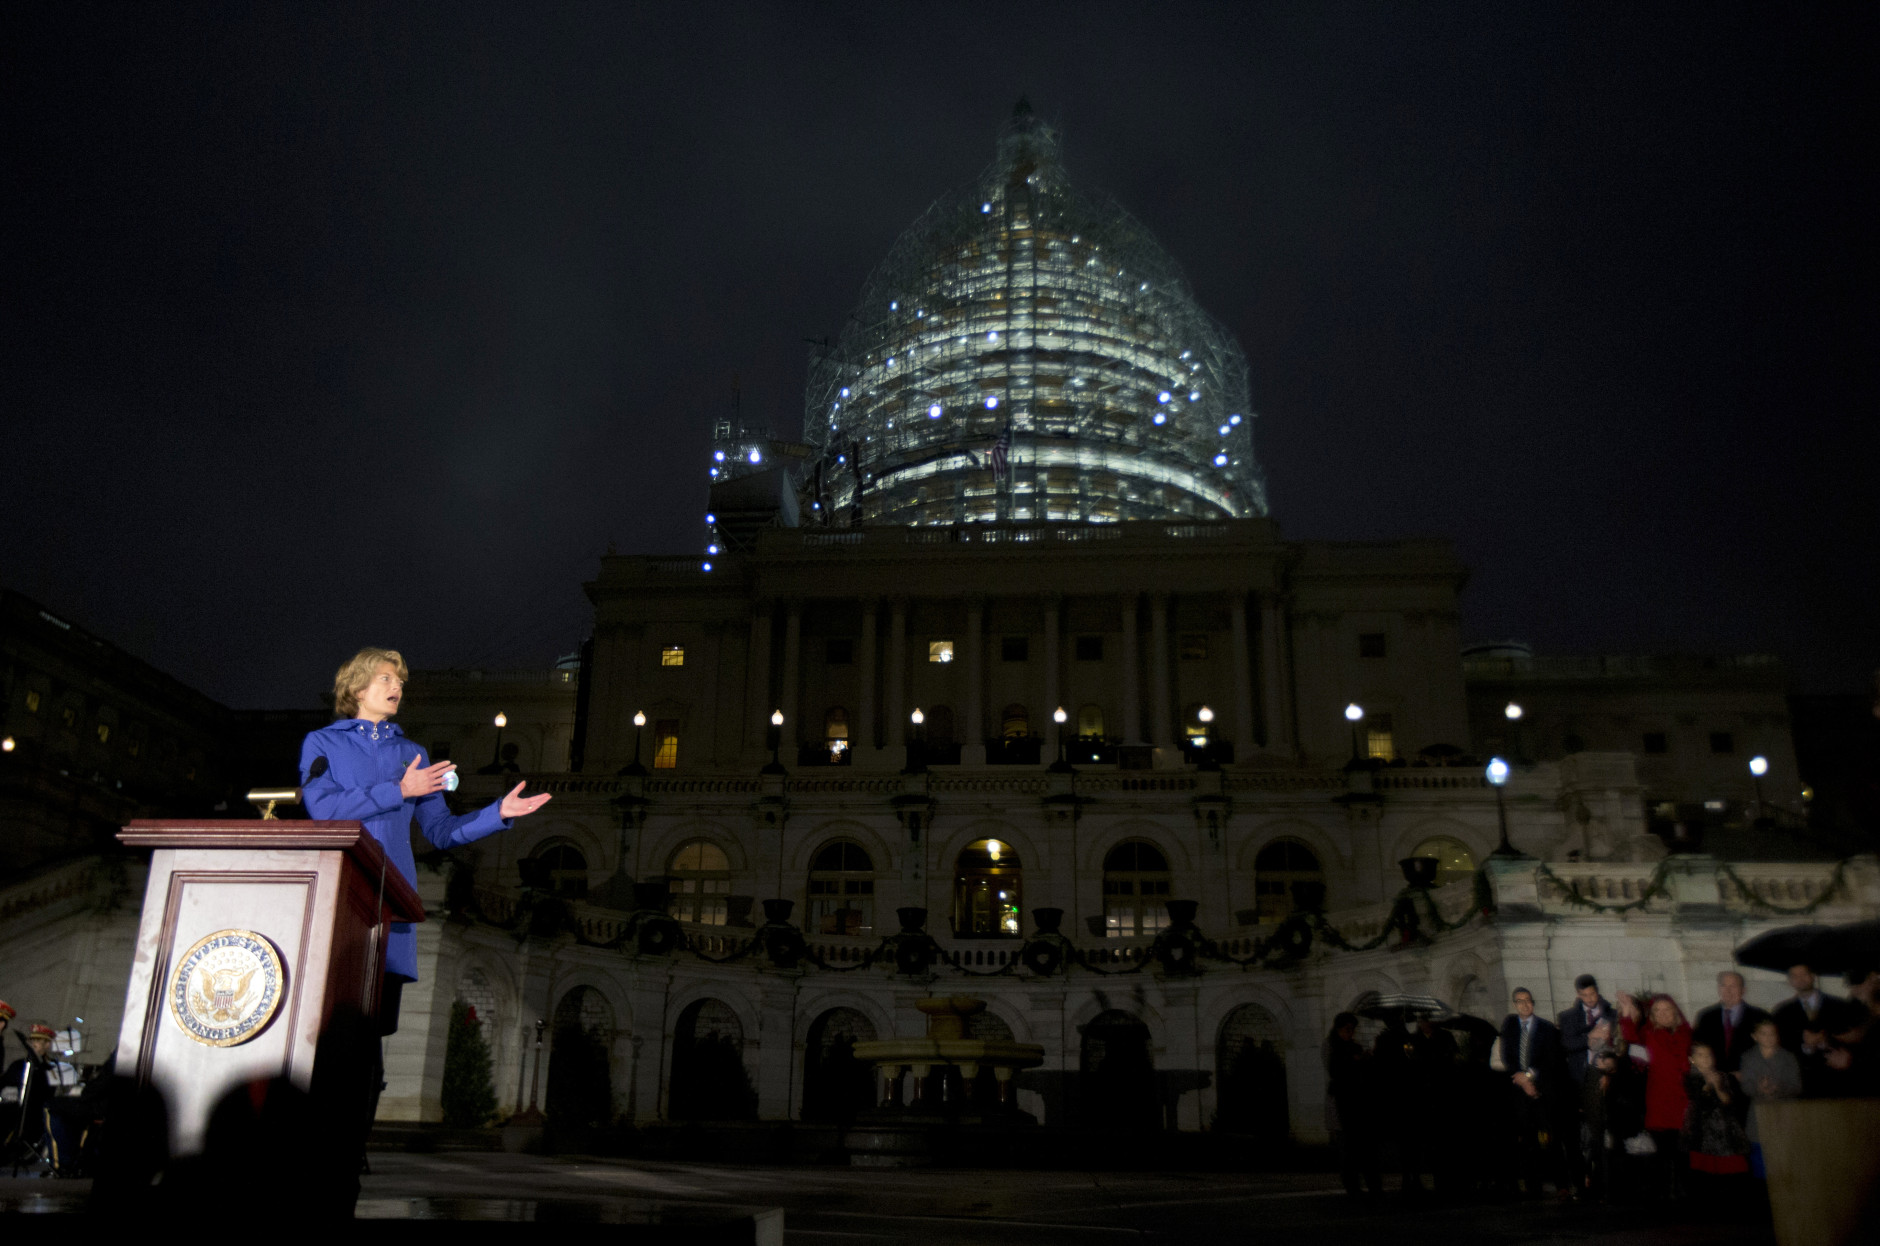 Sen. Lisa Murkowski, R-Alaska, speaks during the lighting of the U.S. Capitol Christmas tree, on the West Front of the Capitol in Washington, Wednesday, Dec. 2, 2015. The 2015 U.S. Capitol Christmas Tree is a 74 feet Lutz tree from Chugach National Forest in Alaska.   (AP Photo/Manuel Balce Ceneta)